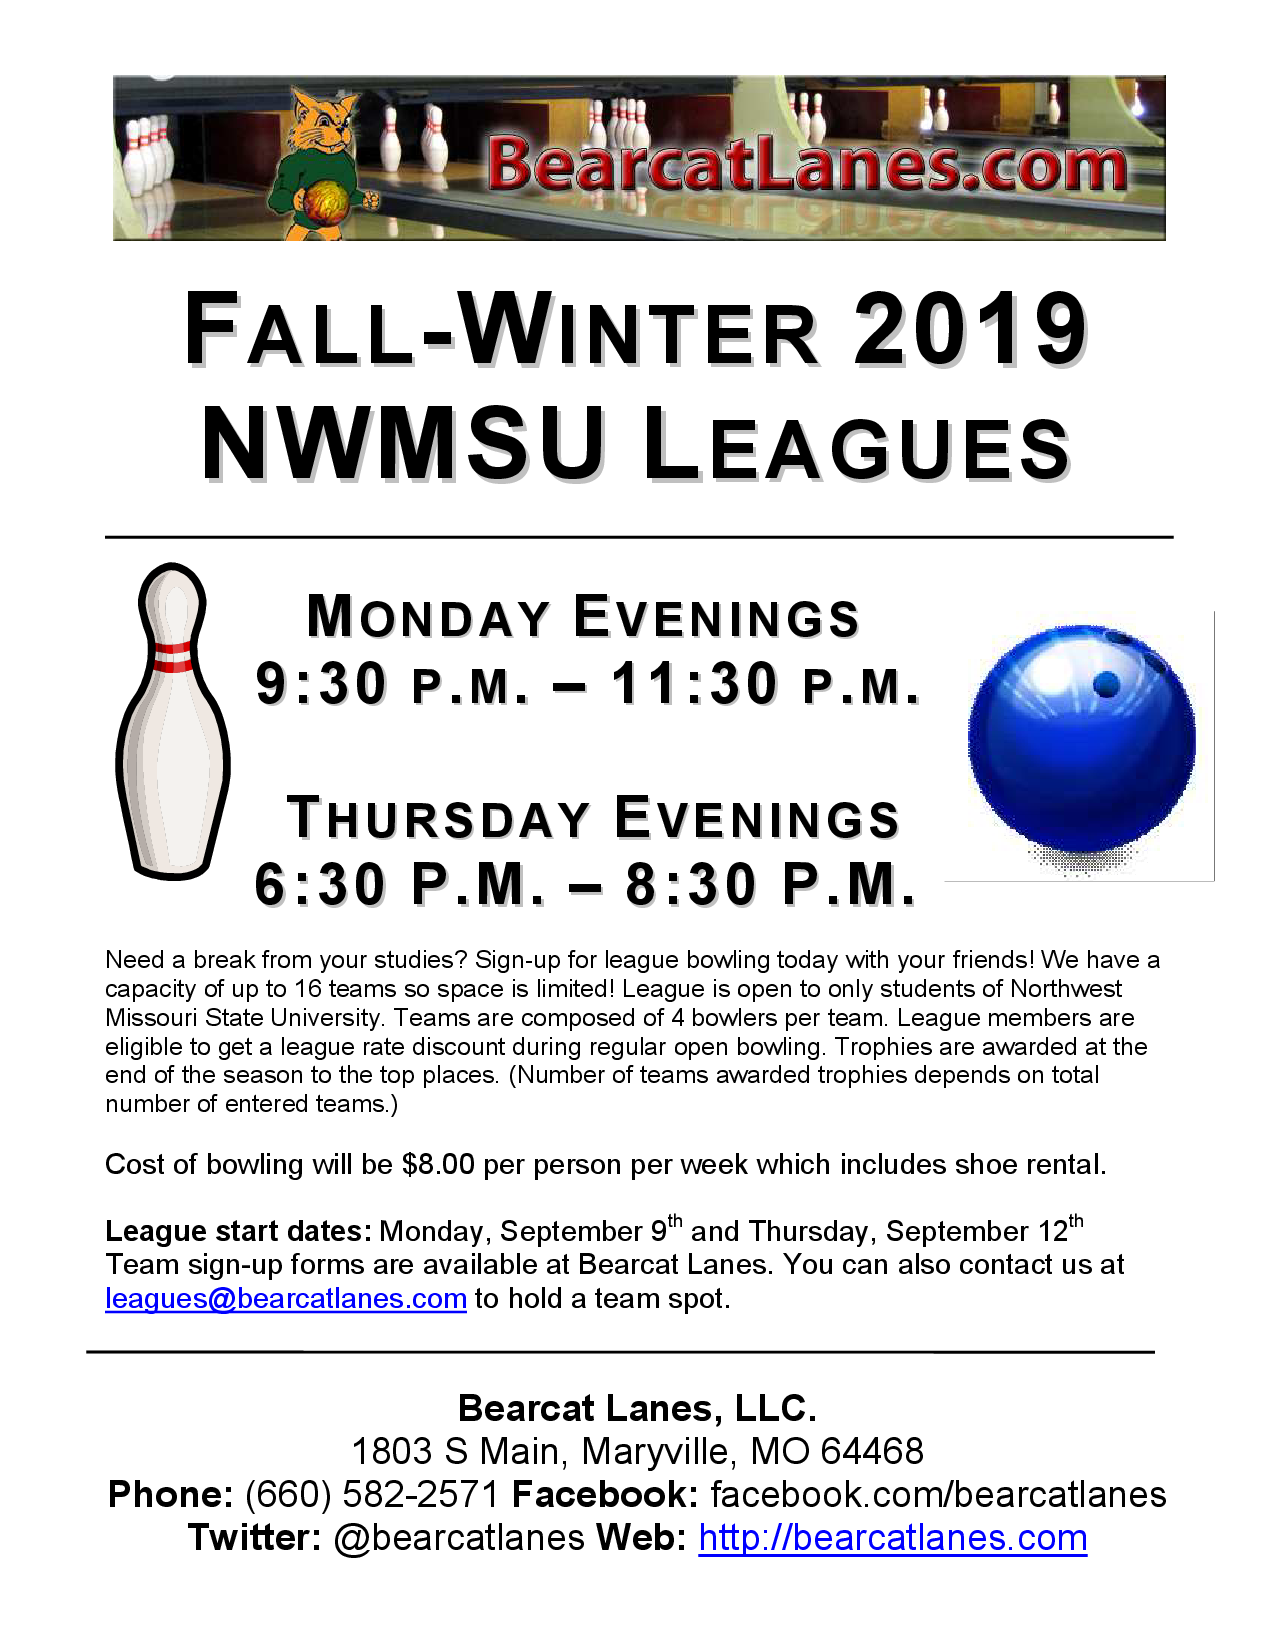 NWMSU Leagues